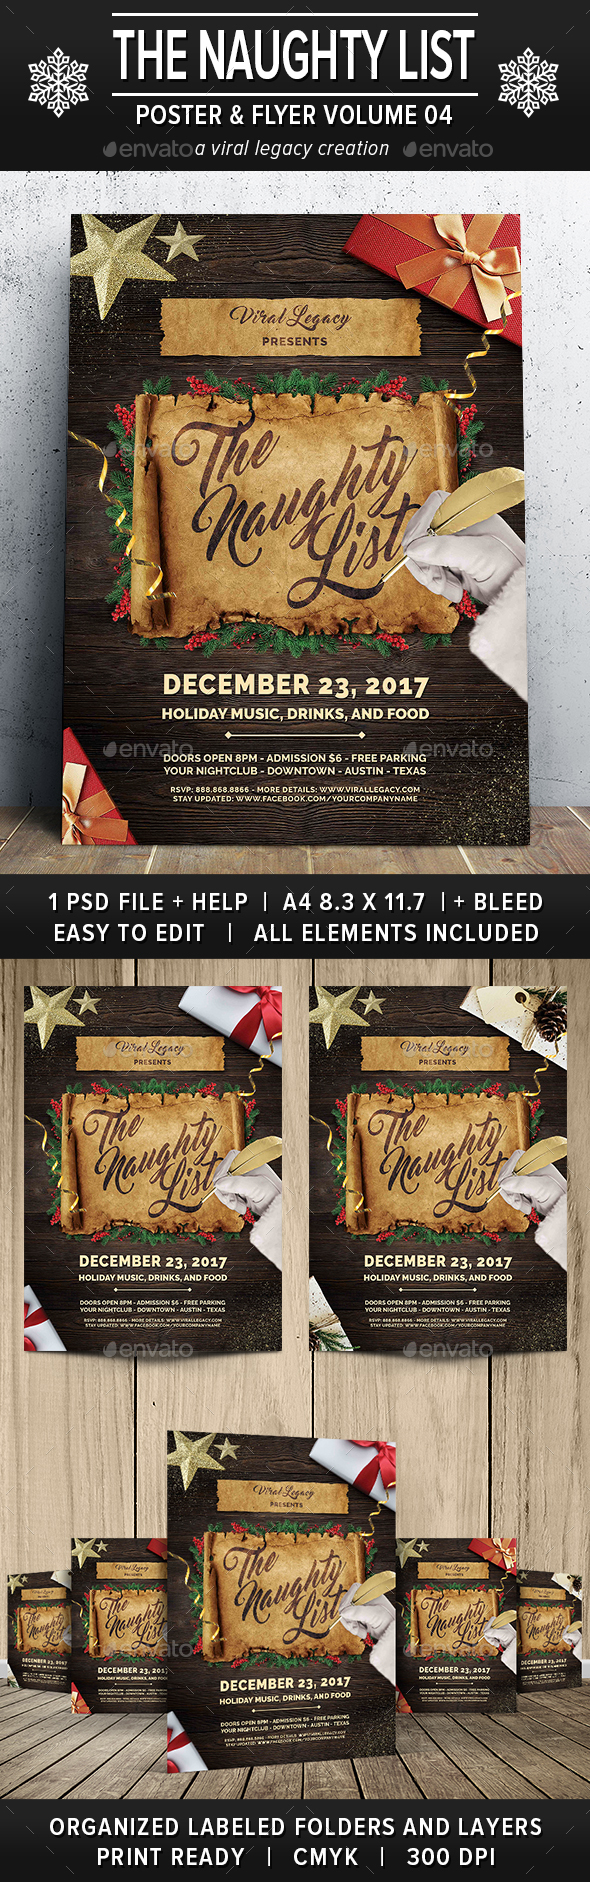 GraphicRiver The Naughty List Poster Flyer V04 21017870